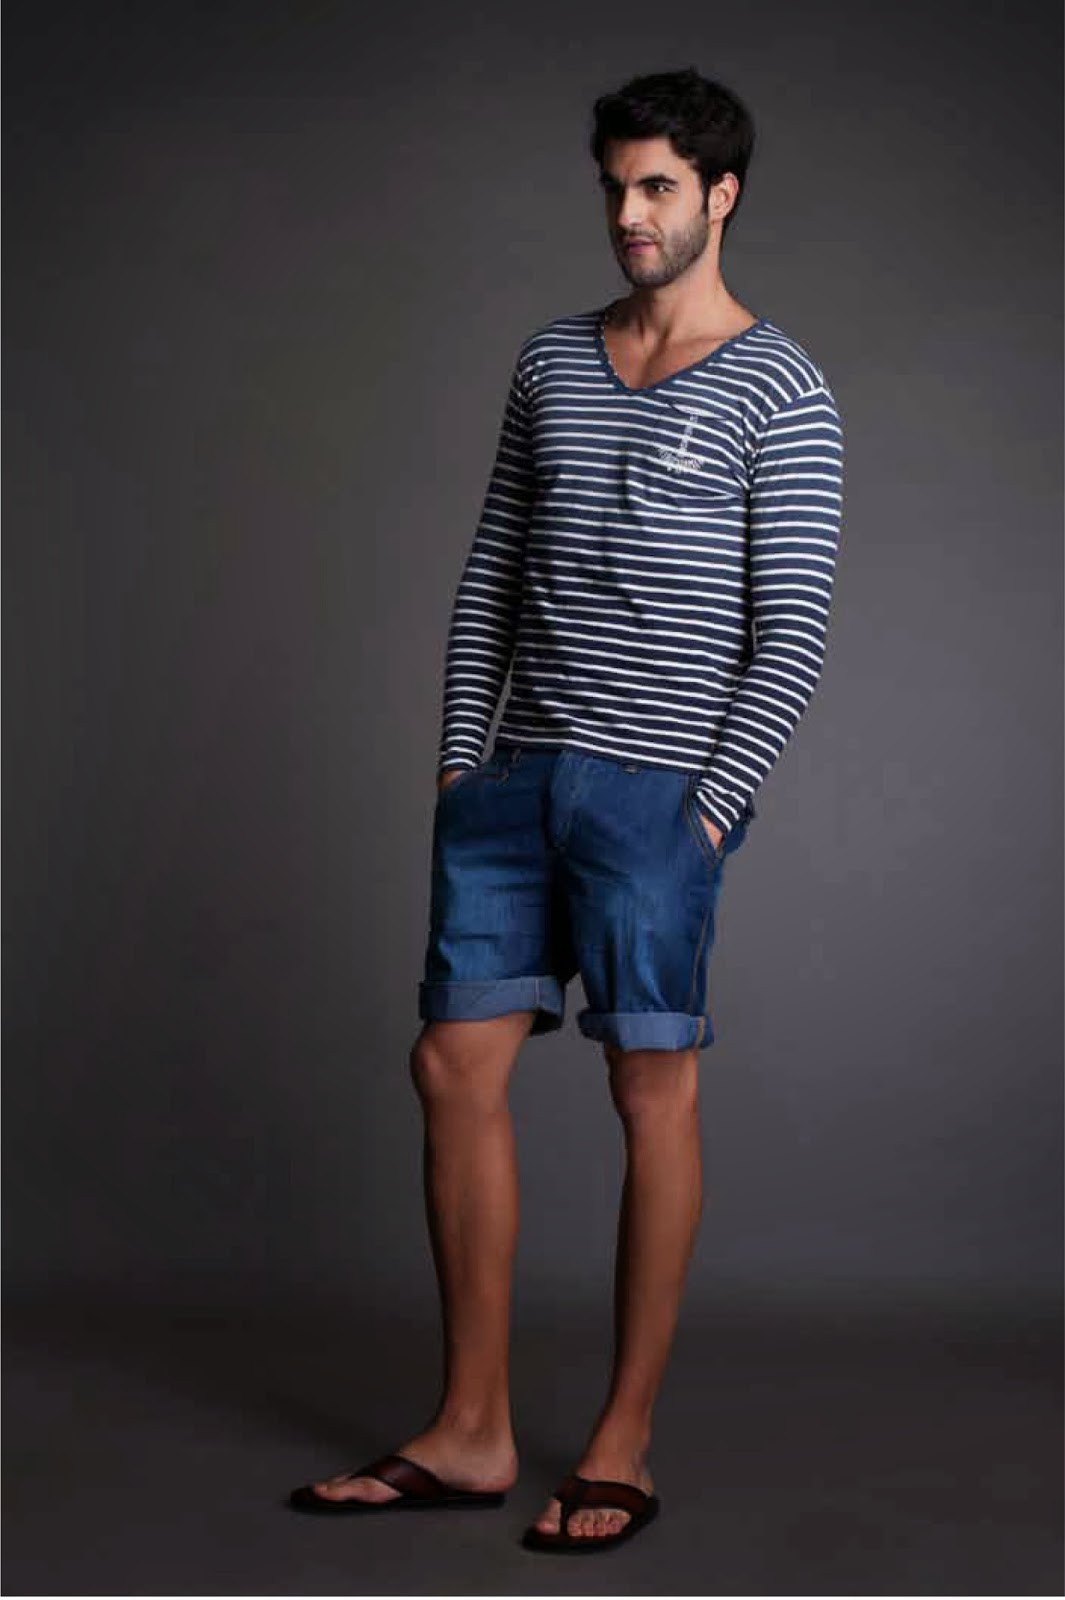 Striped tee with denim shorts to beat the summer blues.